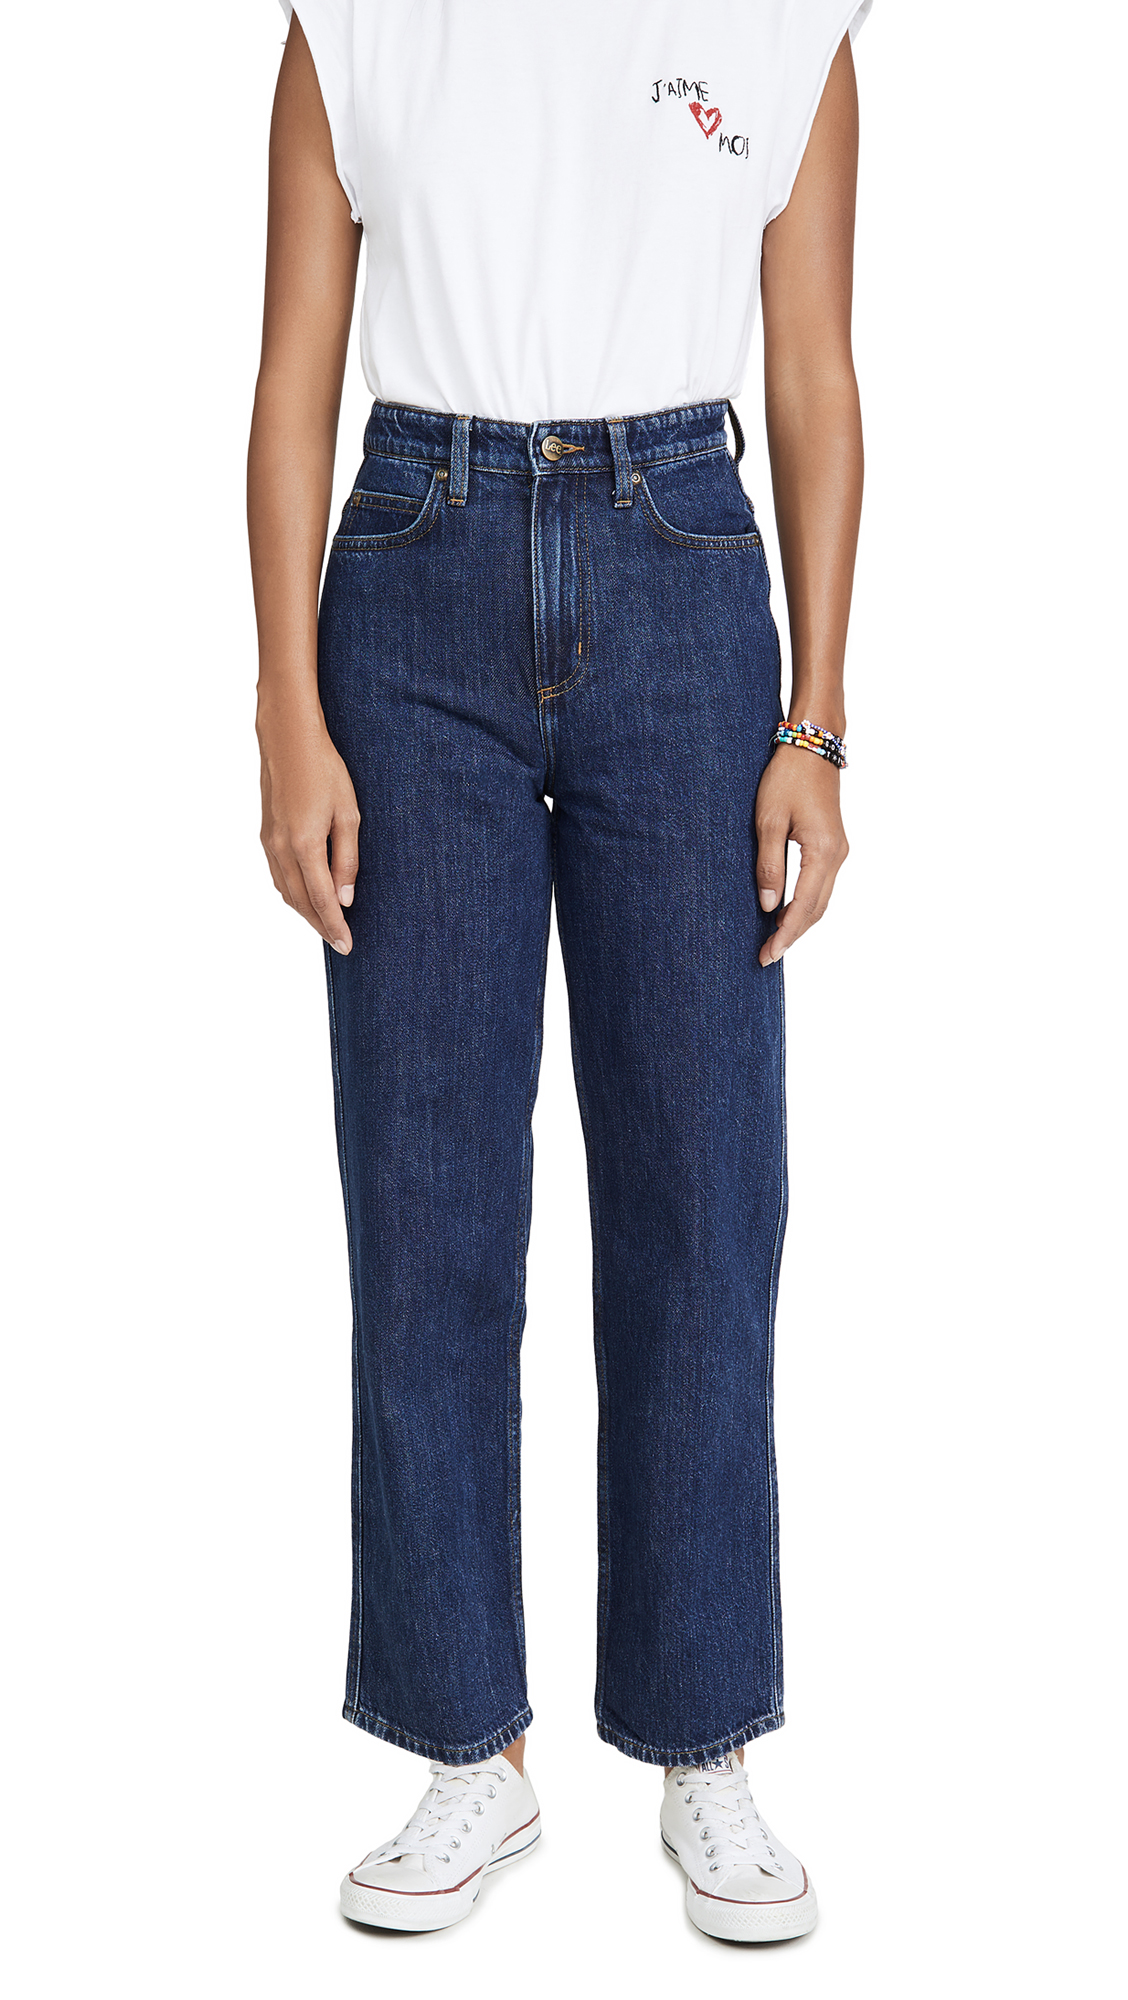 Lee Vintage Modern High Rise Relaxed Stovepipe Jeans - Acid Trip